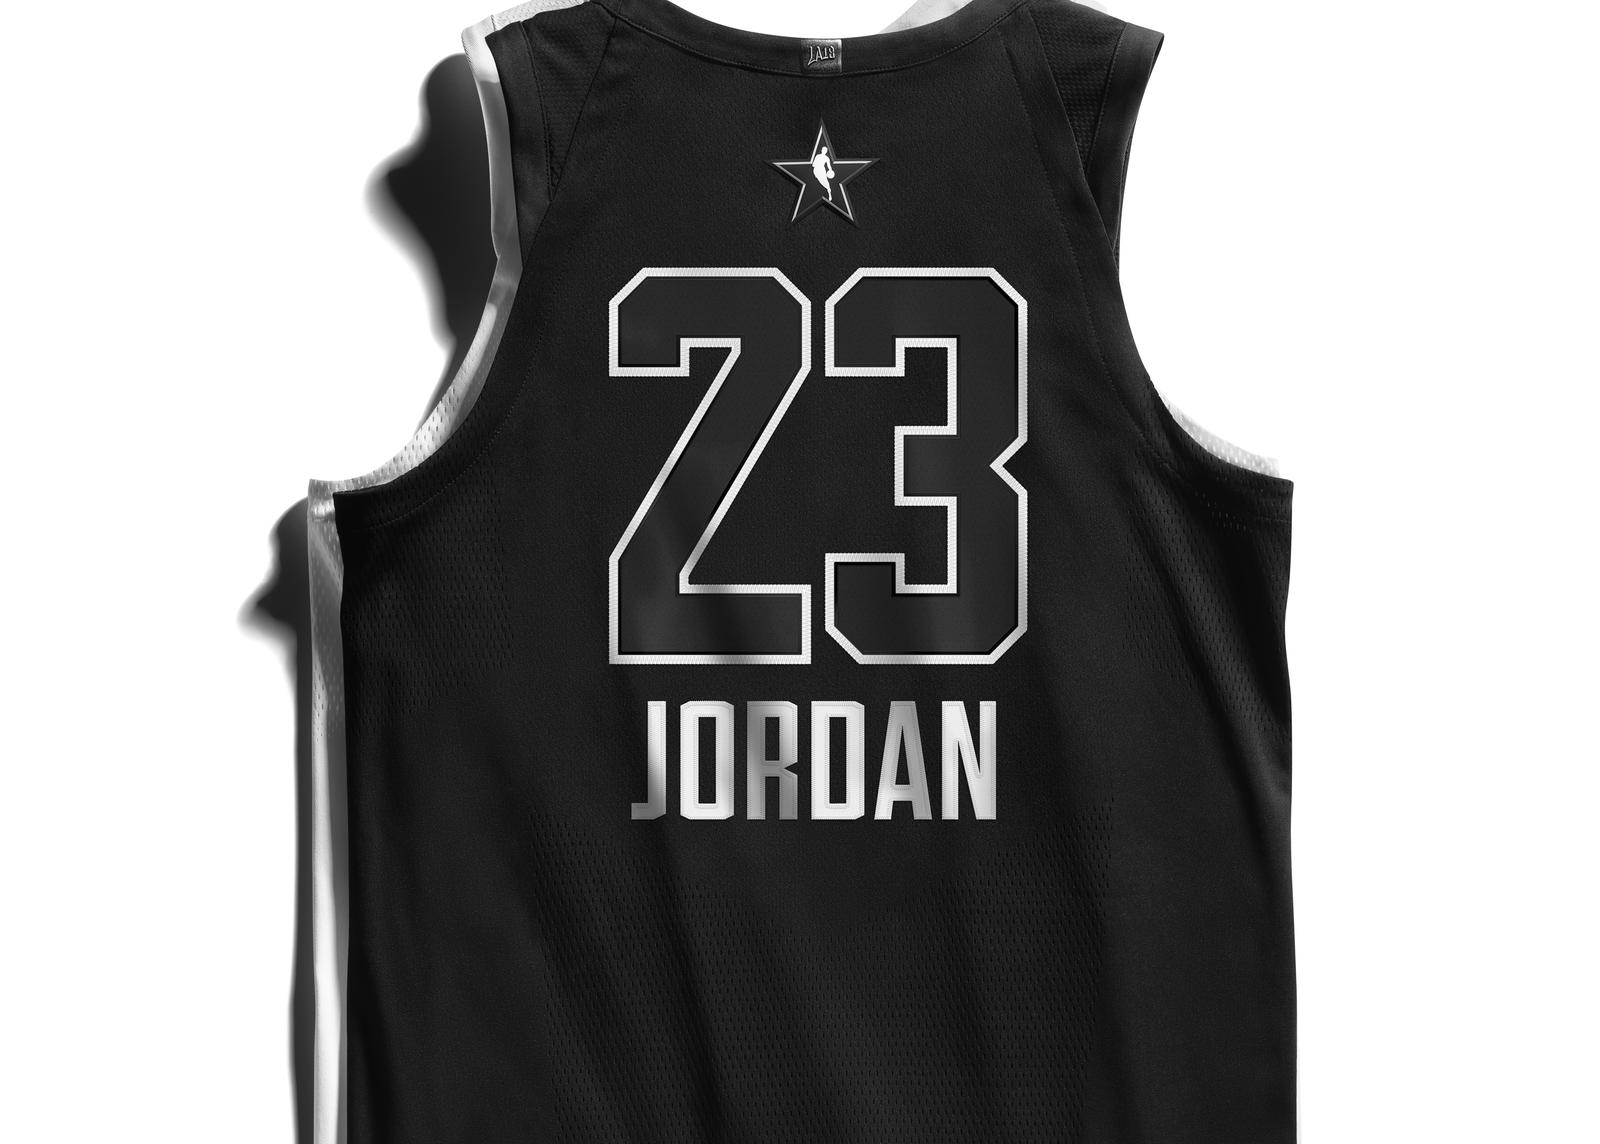 bb60ef51500a Here are the 2018 Jordan Brand NBA All-Star Edition Uniforms - Nike News